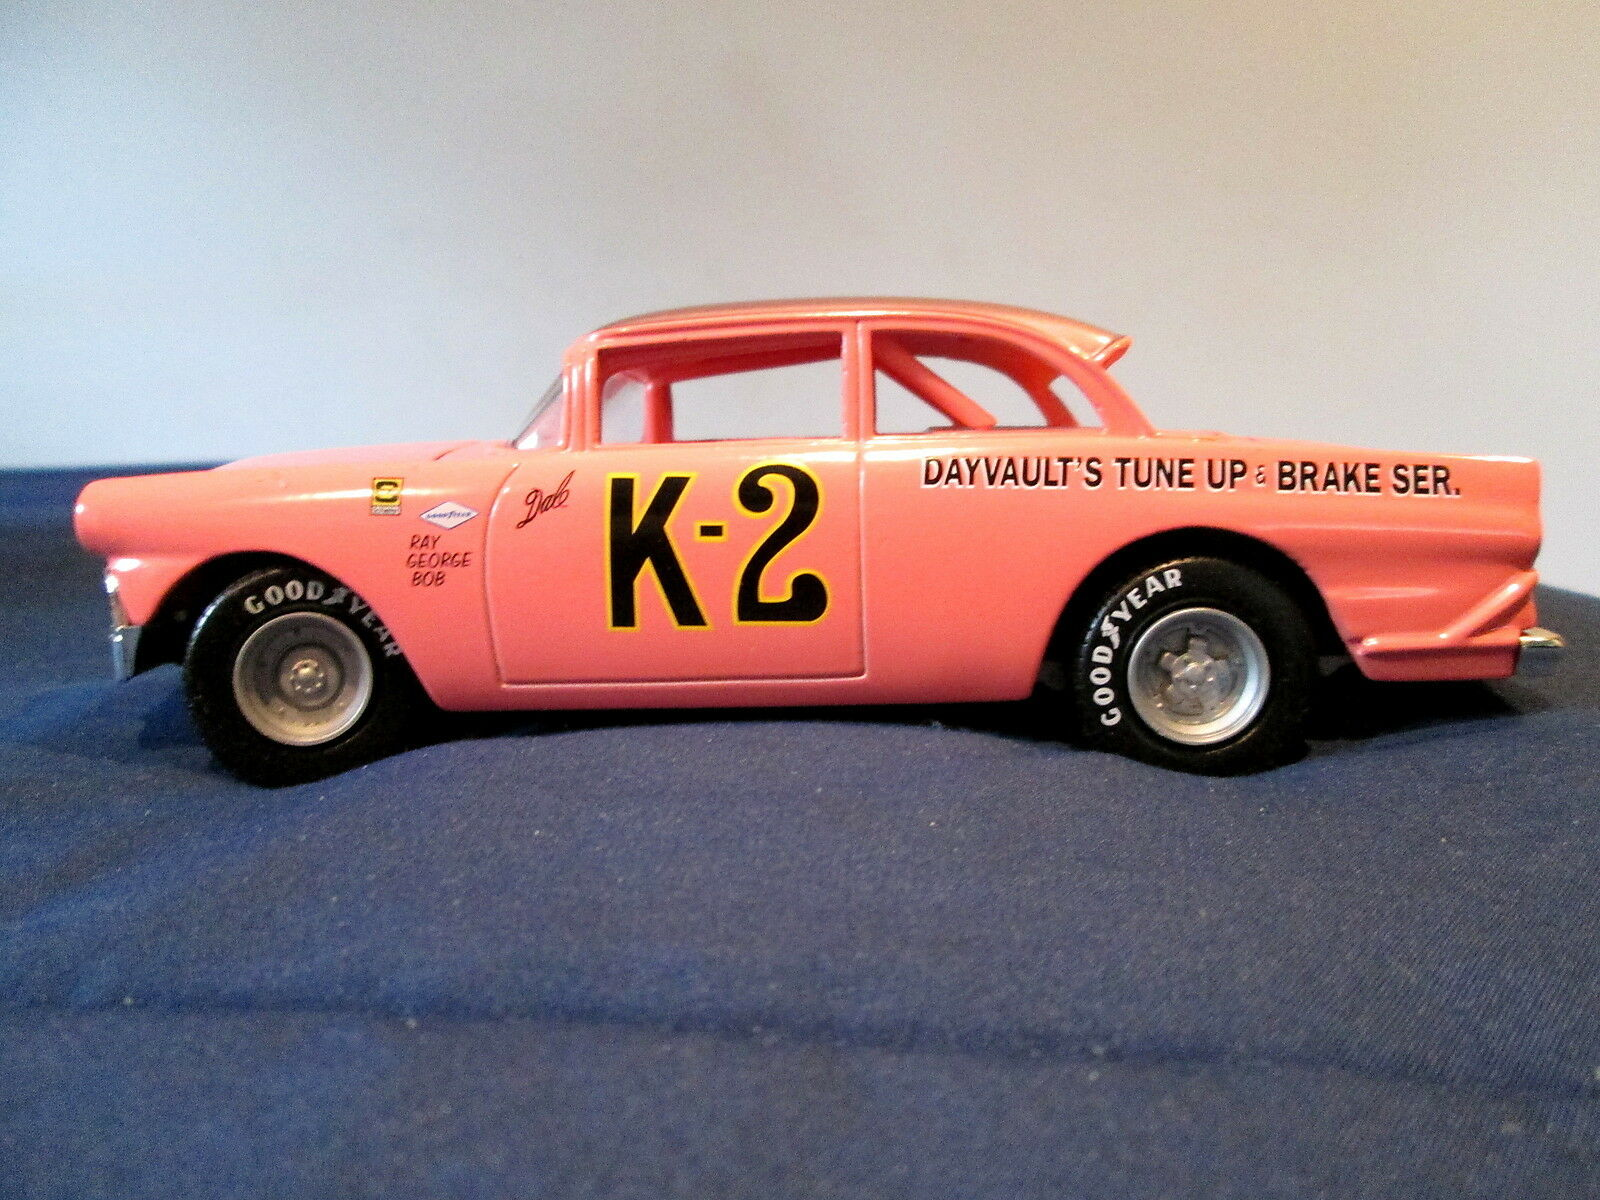 DALE EARNHARDT'S FIRST RACE CAR - 1956 FORD -  K-2  - BY ACTION  LIMITED EDITION